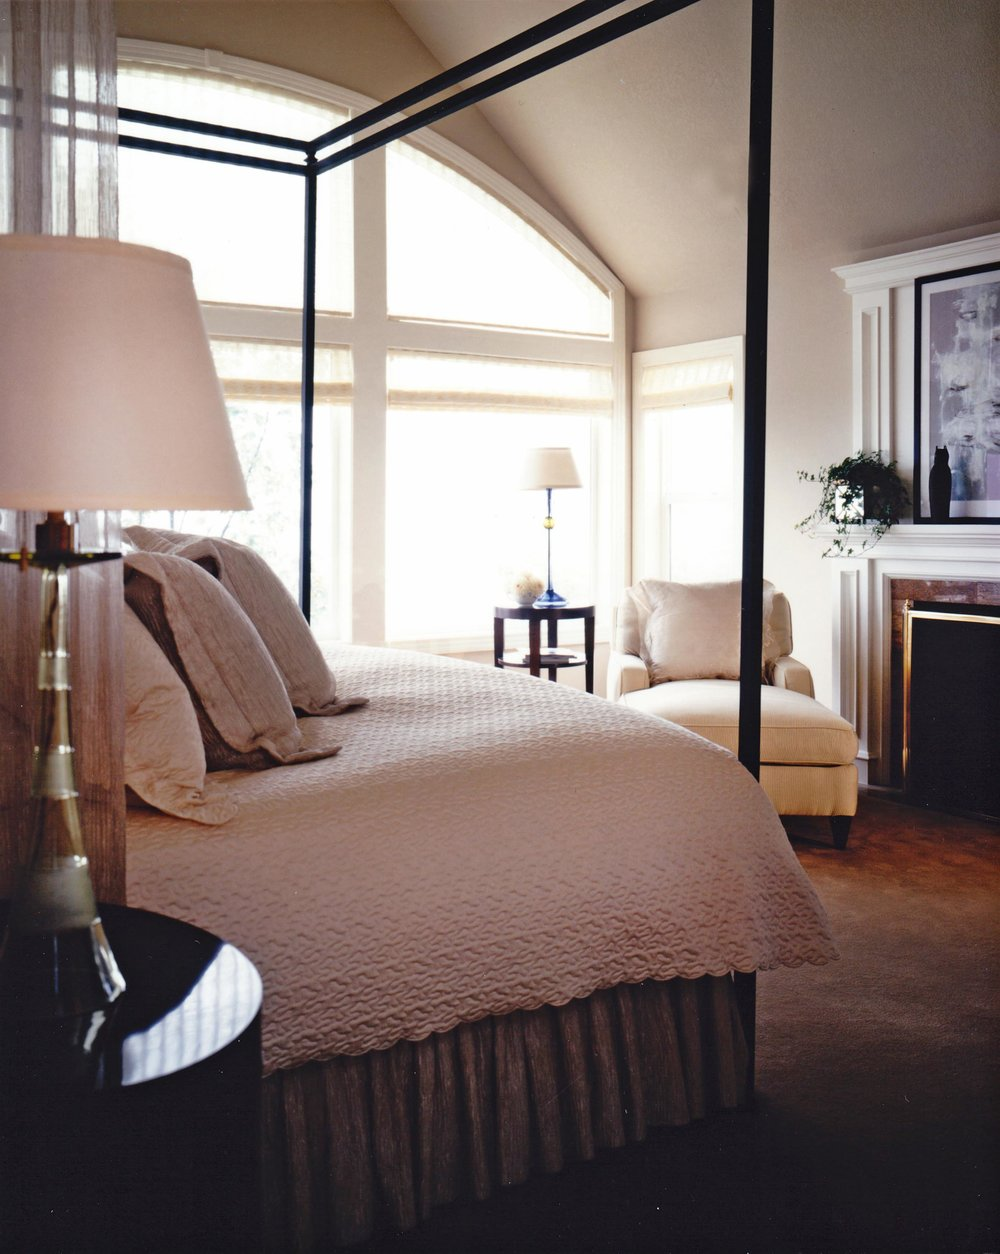 Bedroom interior with large window, table lamps, armchair and fireplace